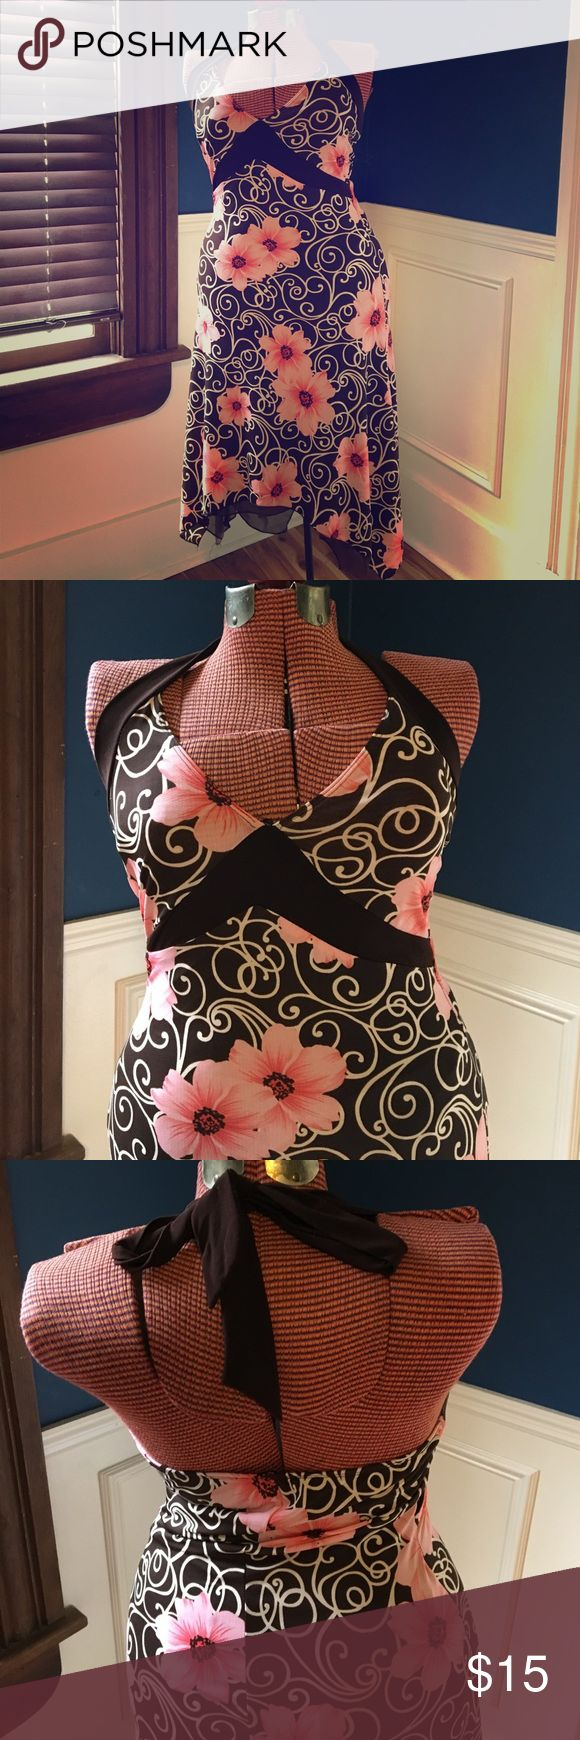 Vintage Halter Dress, Brown and Pink Flowers Handkerchief hem halter dress by Moa Moa, vintage late 90s, which is cute for a date night or just a casual day out. Dress is made of a poly stretch knit which will accommodate a range of sizes, but is marked M. Appears to be in perfect condition, but one hanger strap has been removed. Obviously that doesn't affect the integrity of the dress. This is a super cute and comfortable one - I can't wear halter is anymore due to neck problems, I'm sad to…